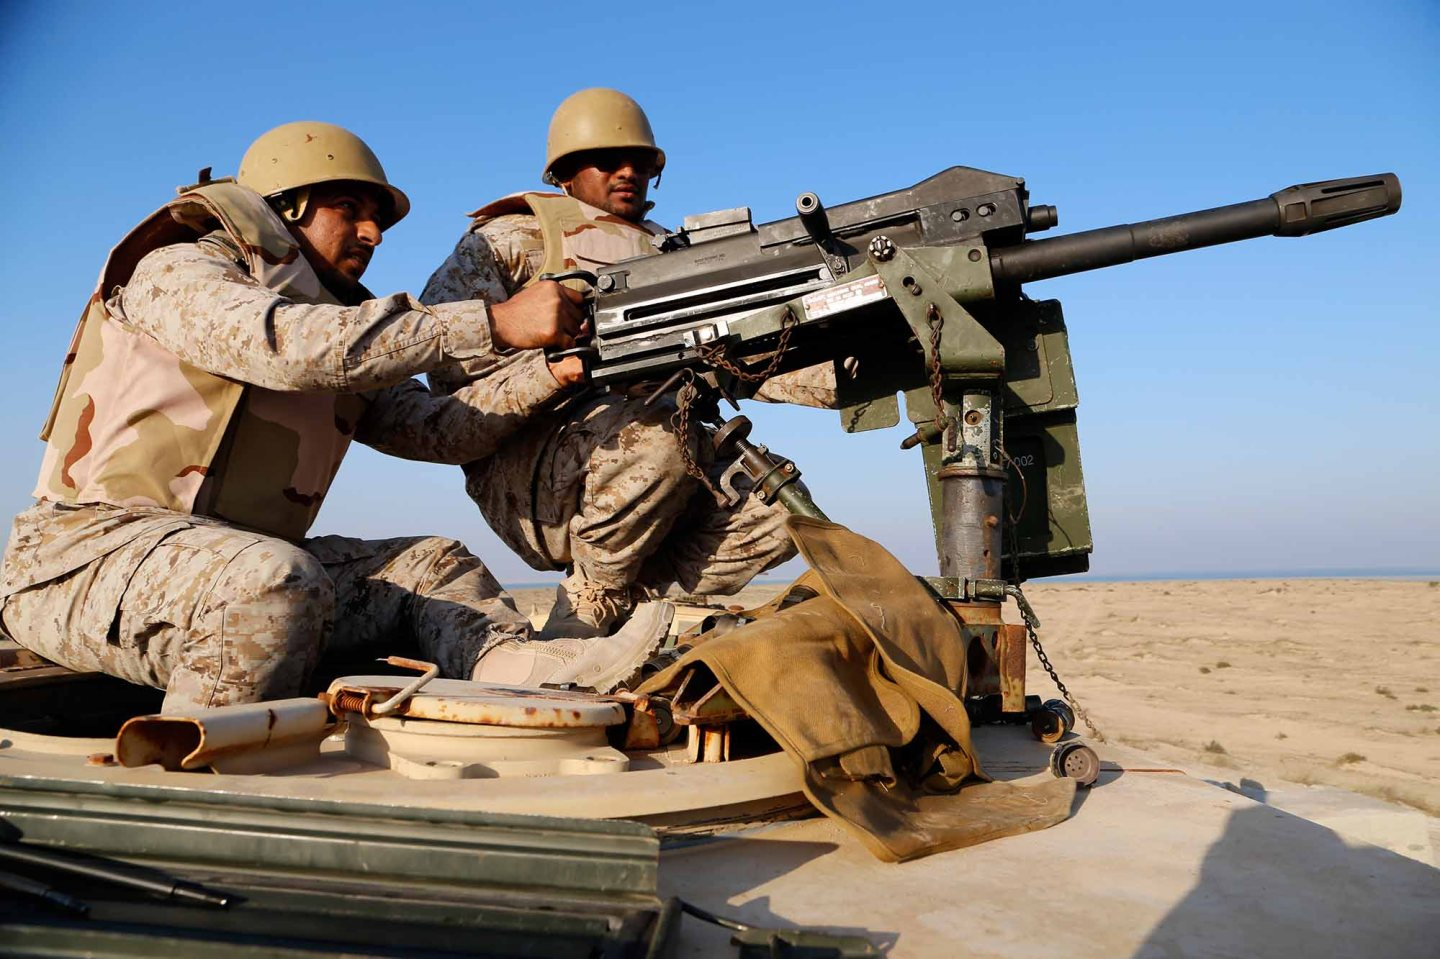 5TH FLEET AREA OF RESPONSIBILITY (Dec. 11, 2014) A Saudi Marine fires an Mk19 grenade launcher during a joint machinegun live-fire exercise with U.S. Marines from Echo Company, Battalion Landing Team 2nd Battalion, 1st Marines, 11th Marine Expeditionary Unit (MEU), as part of exercise Red Reef 15 in the U.S. 5th Fleet area of responsibility, Dec. 11, 2014. Red Reef, is part of a routine theater security cooperation engagement plan between the U.S. Navy, U.S. Marine Corps and Royal Saudi Naval Forces that serves as an excellent opportunity to strengthen tactical proficiency in critical mission areas and support long-term regional security.